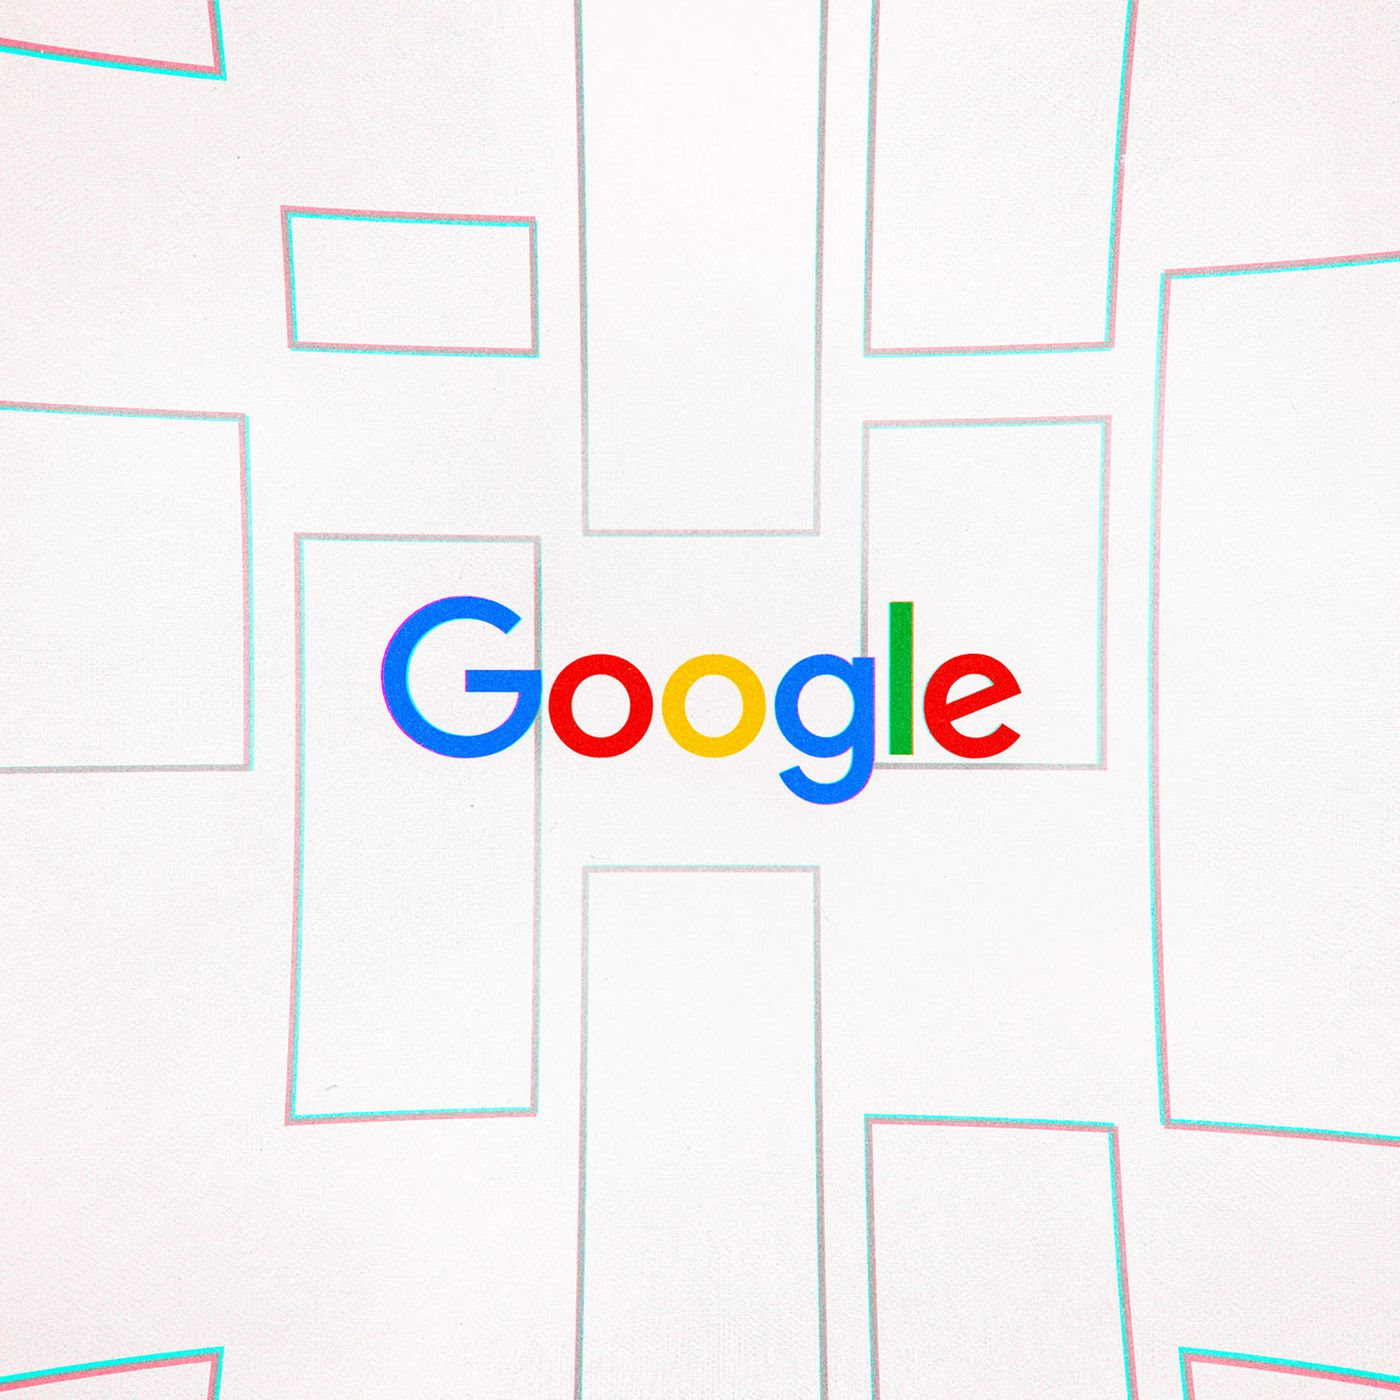 Google is making it easier to doomscroll through search results